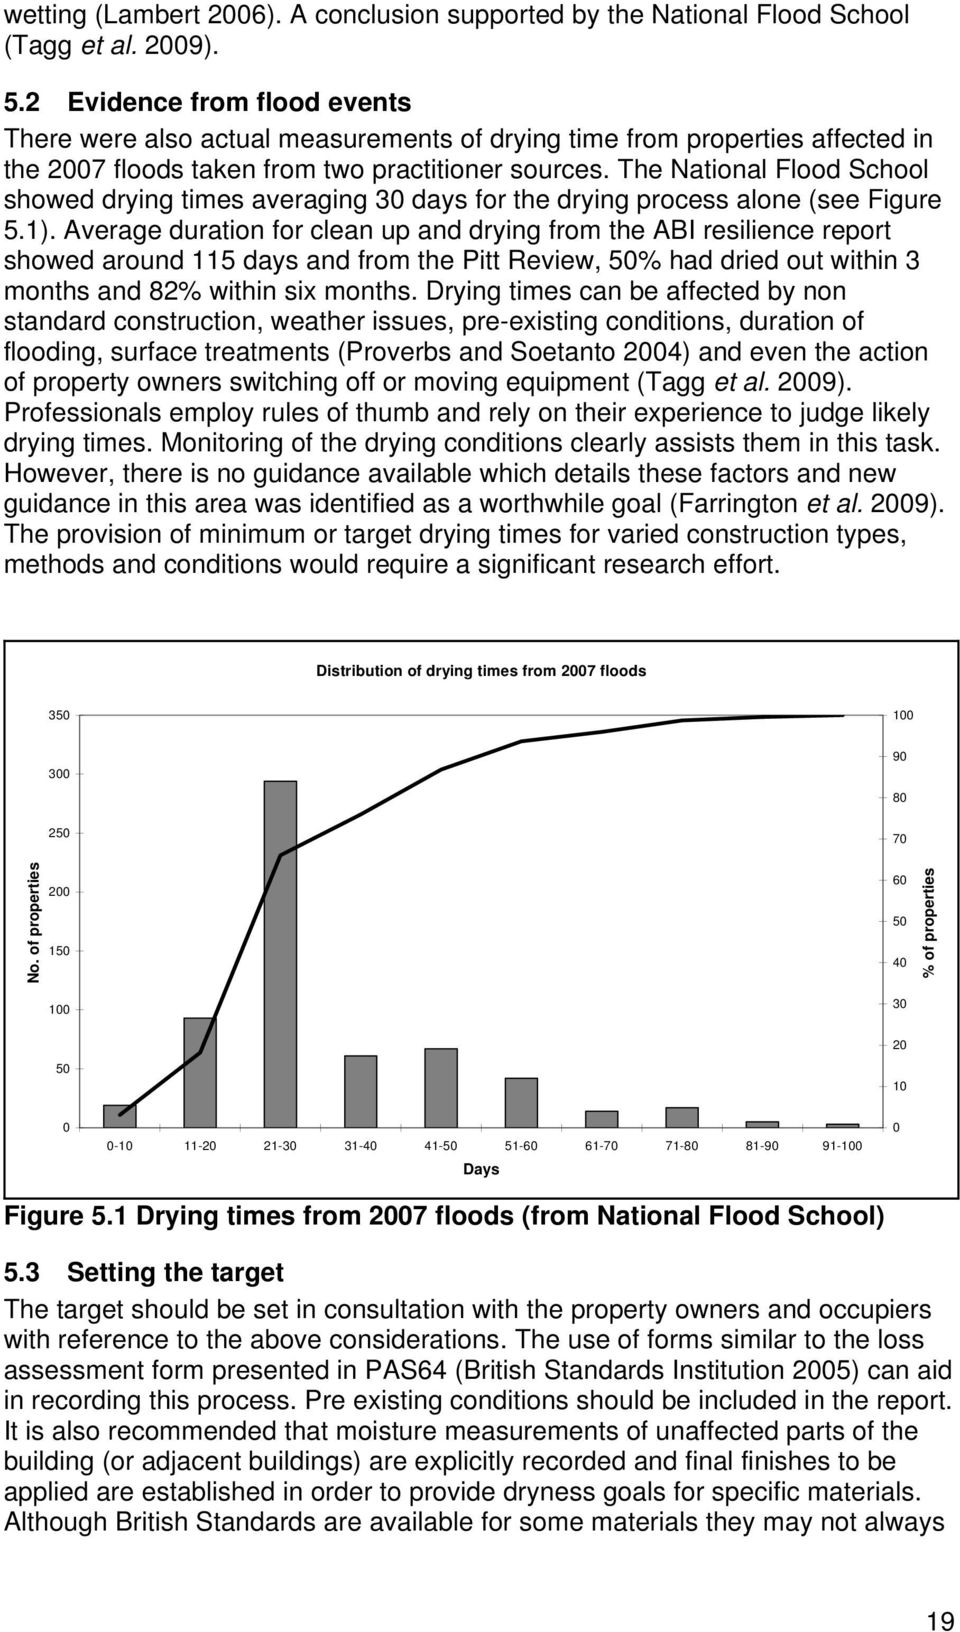 The National Flood School showed drying times averaging 30 days for the drying process alone (see Figure 5.1).